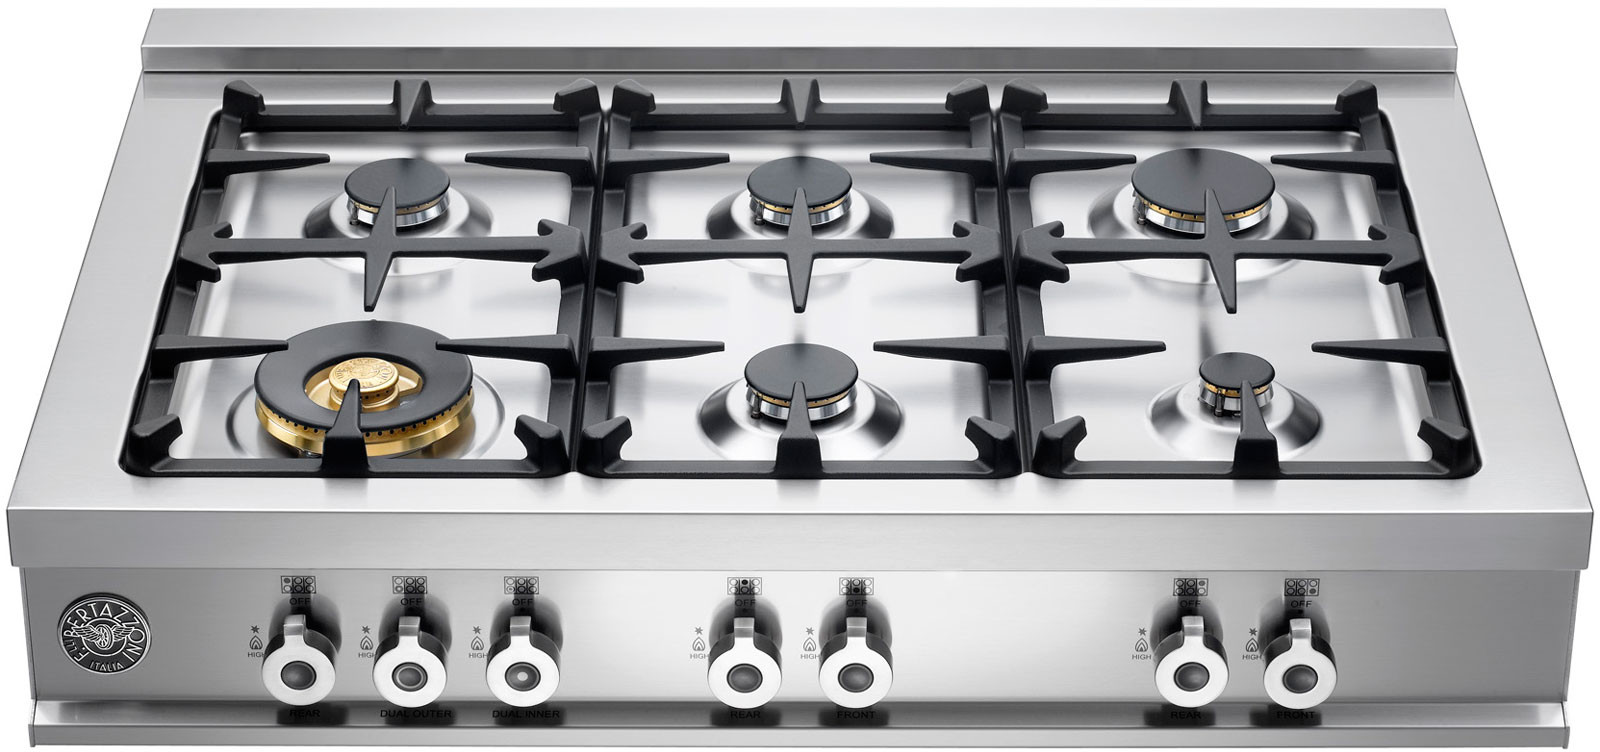 Bertazzoni Cb36600x 36 Inch Pro Style Gas Rangetop With 6 Sealed Burners 18 000 Btu Br Burner Continuous Grates Electronic Ignition And Island